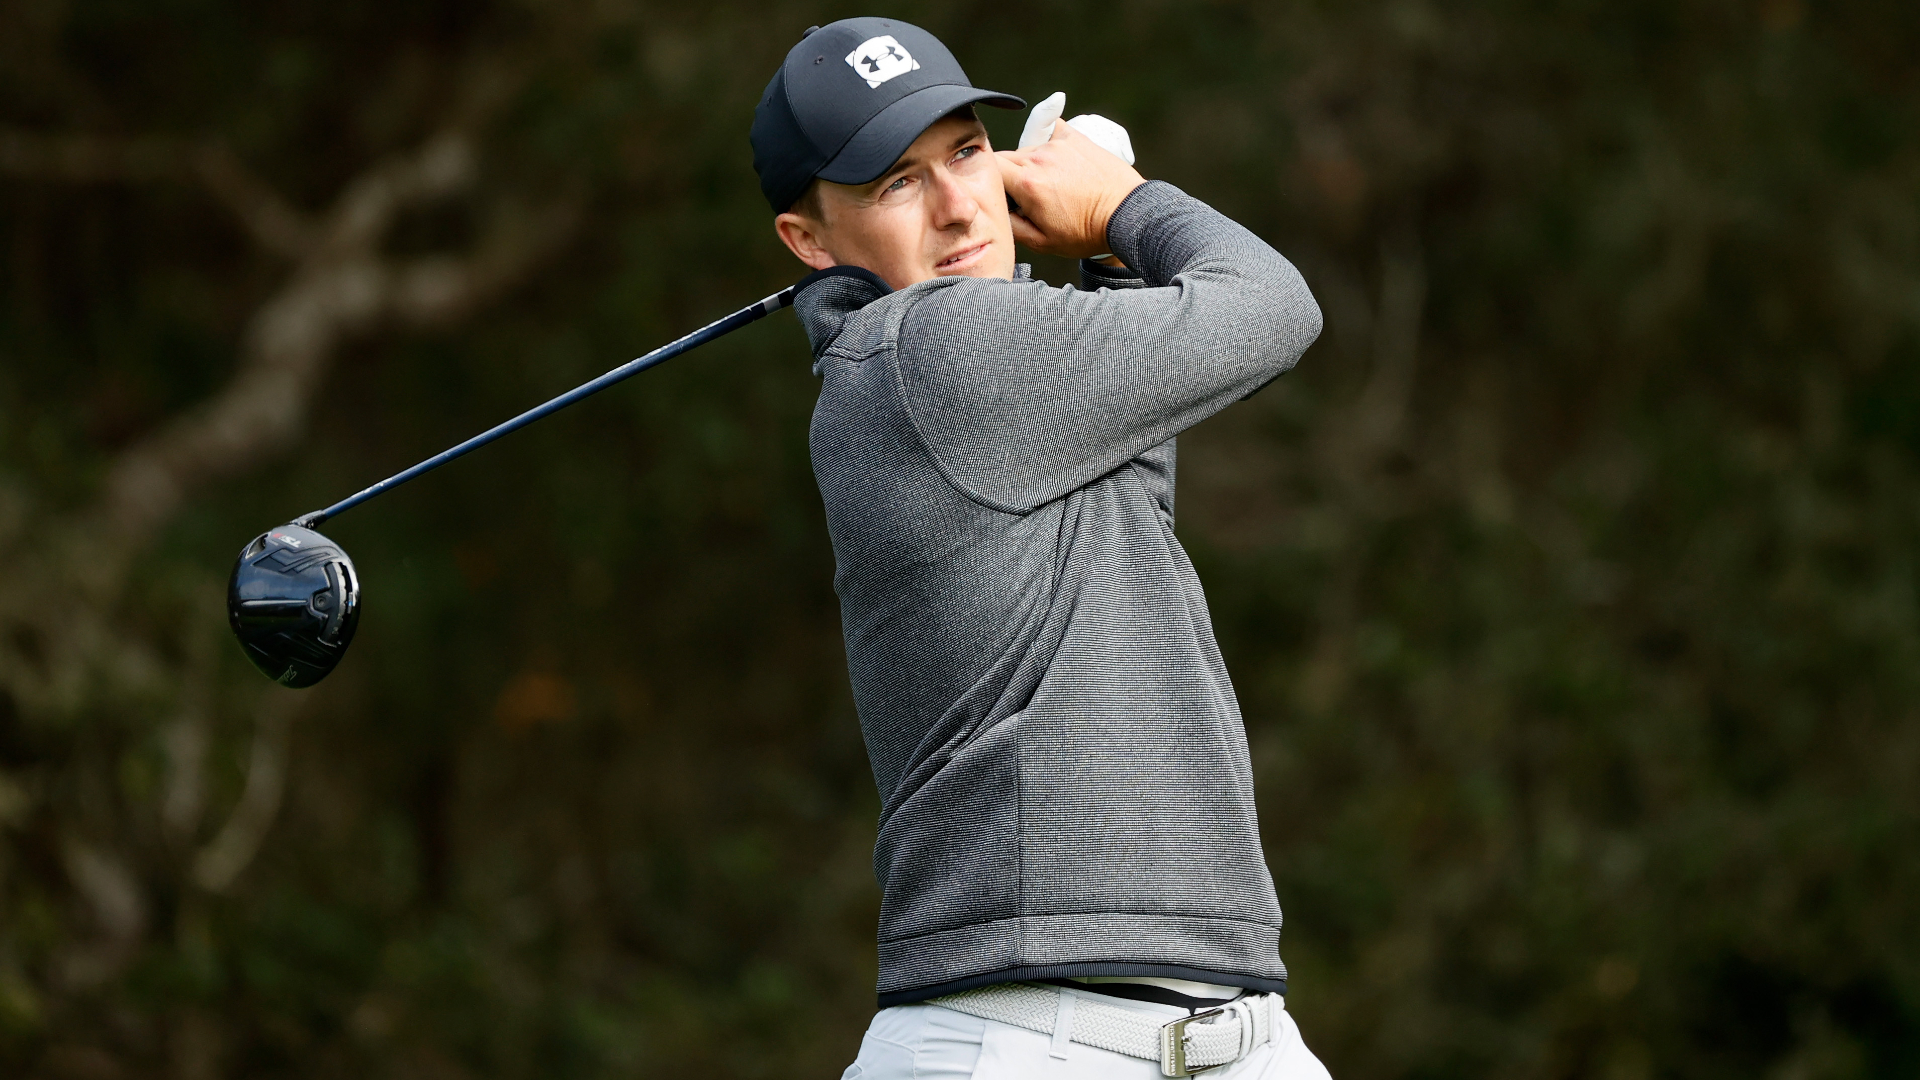 Spieth leads at halfway mark at Pebble Beach